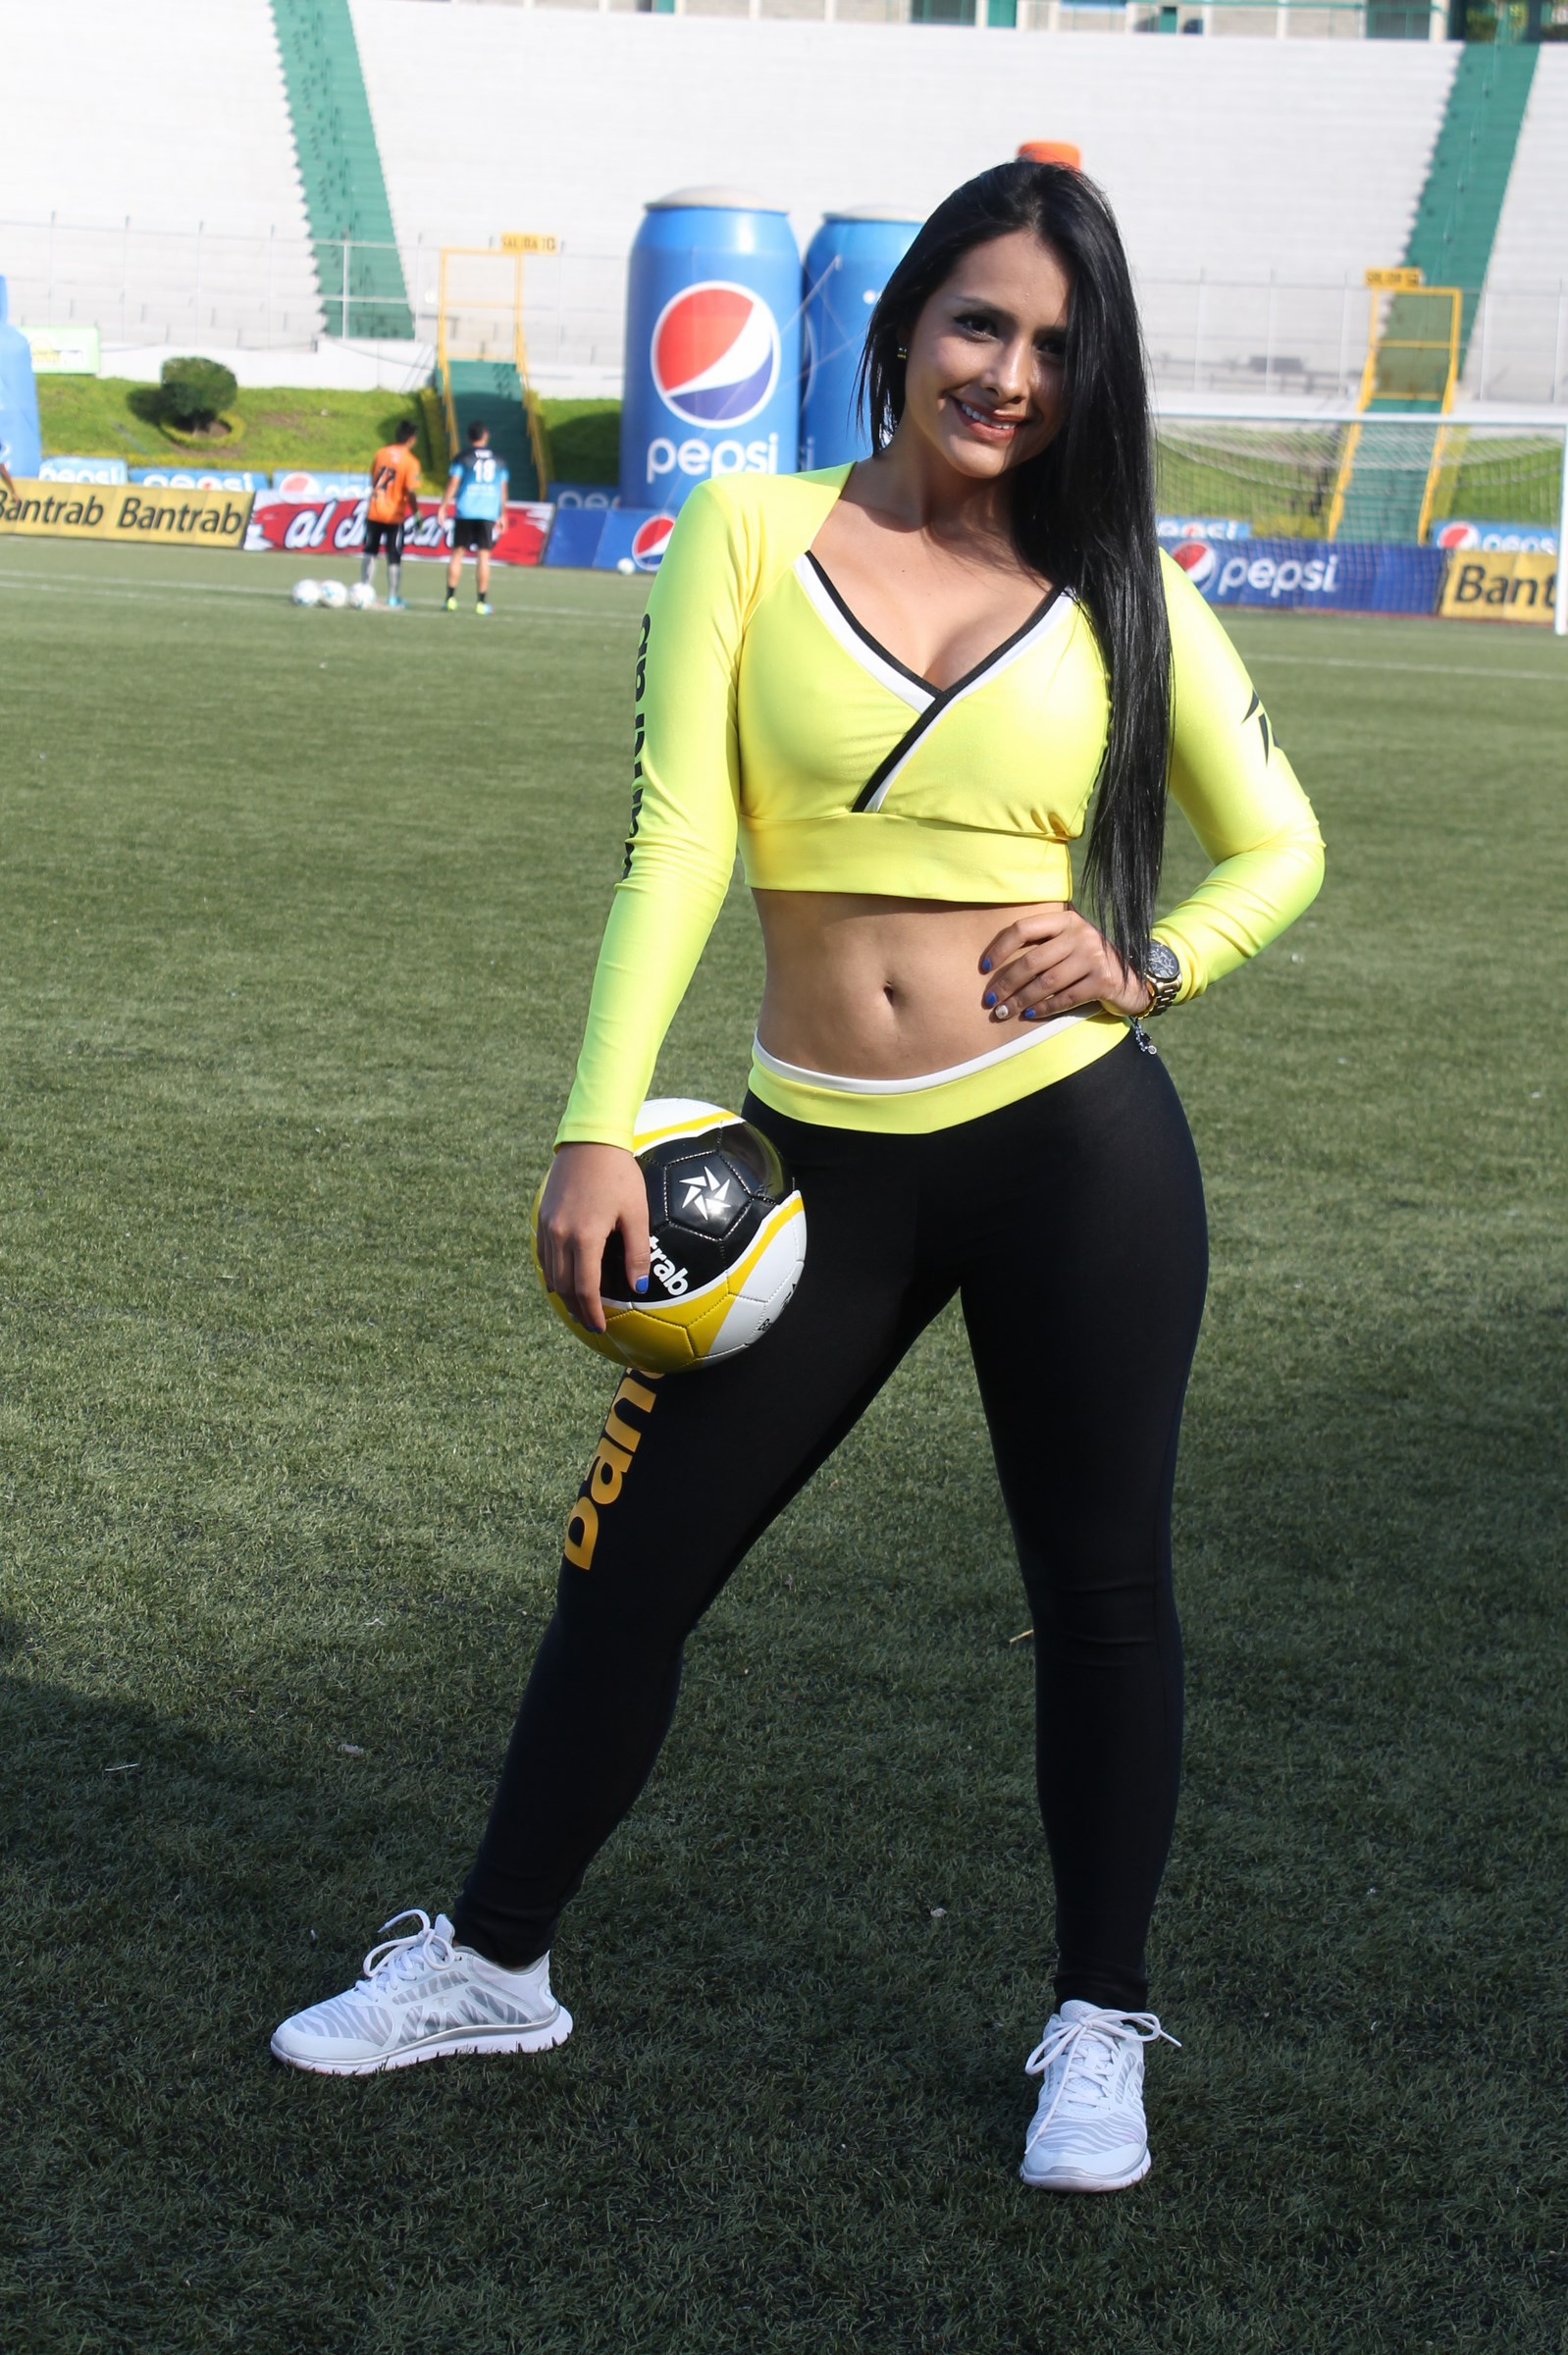 stefany-robles-7